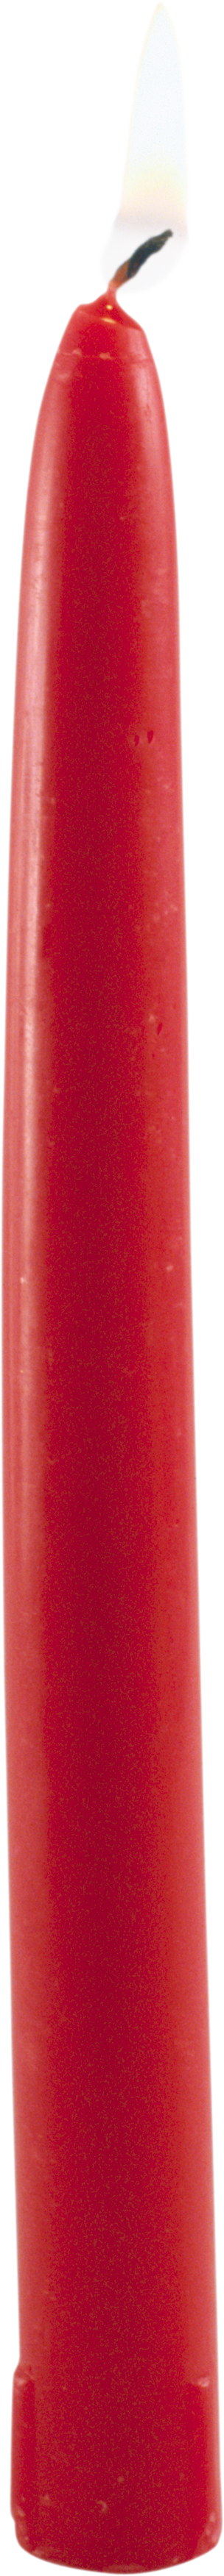 Red candle png. Candles images free download